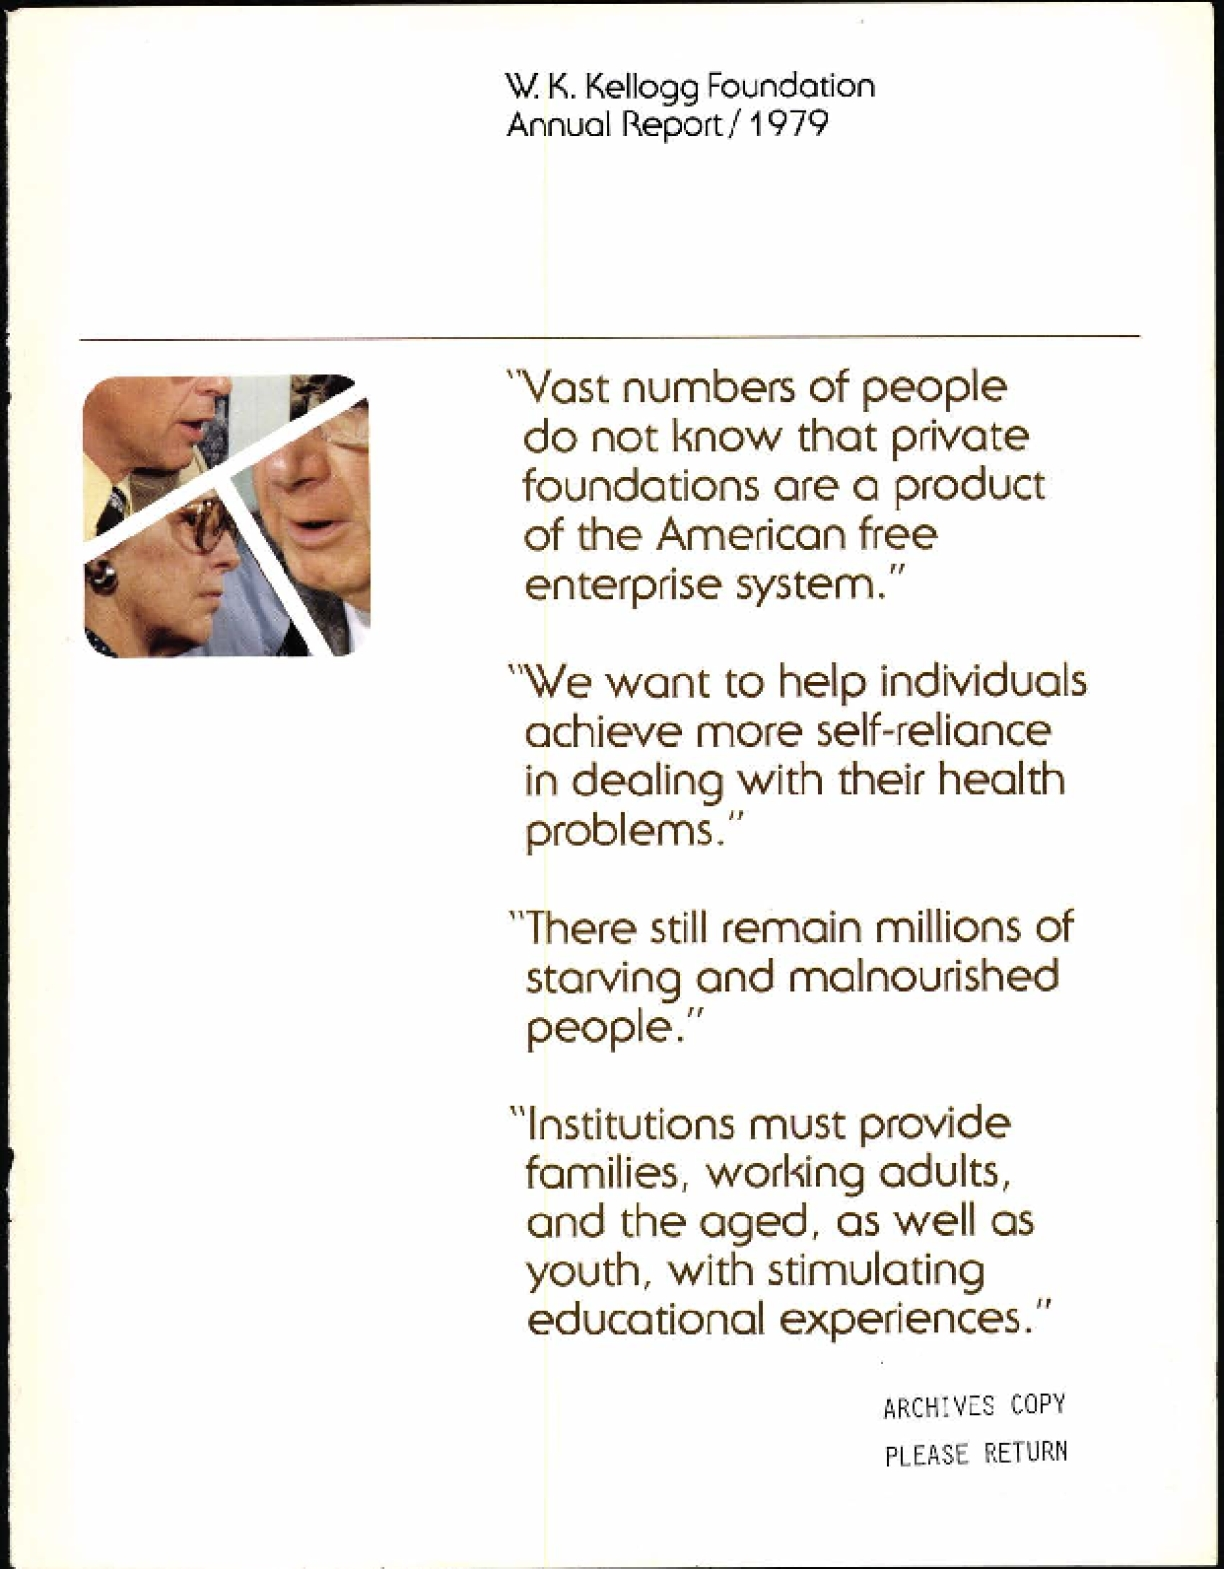 1979 W.K. Kellogg Foundation Annual Report